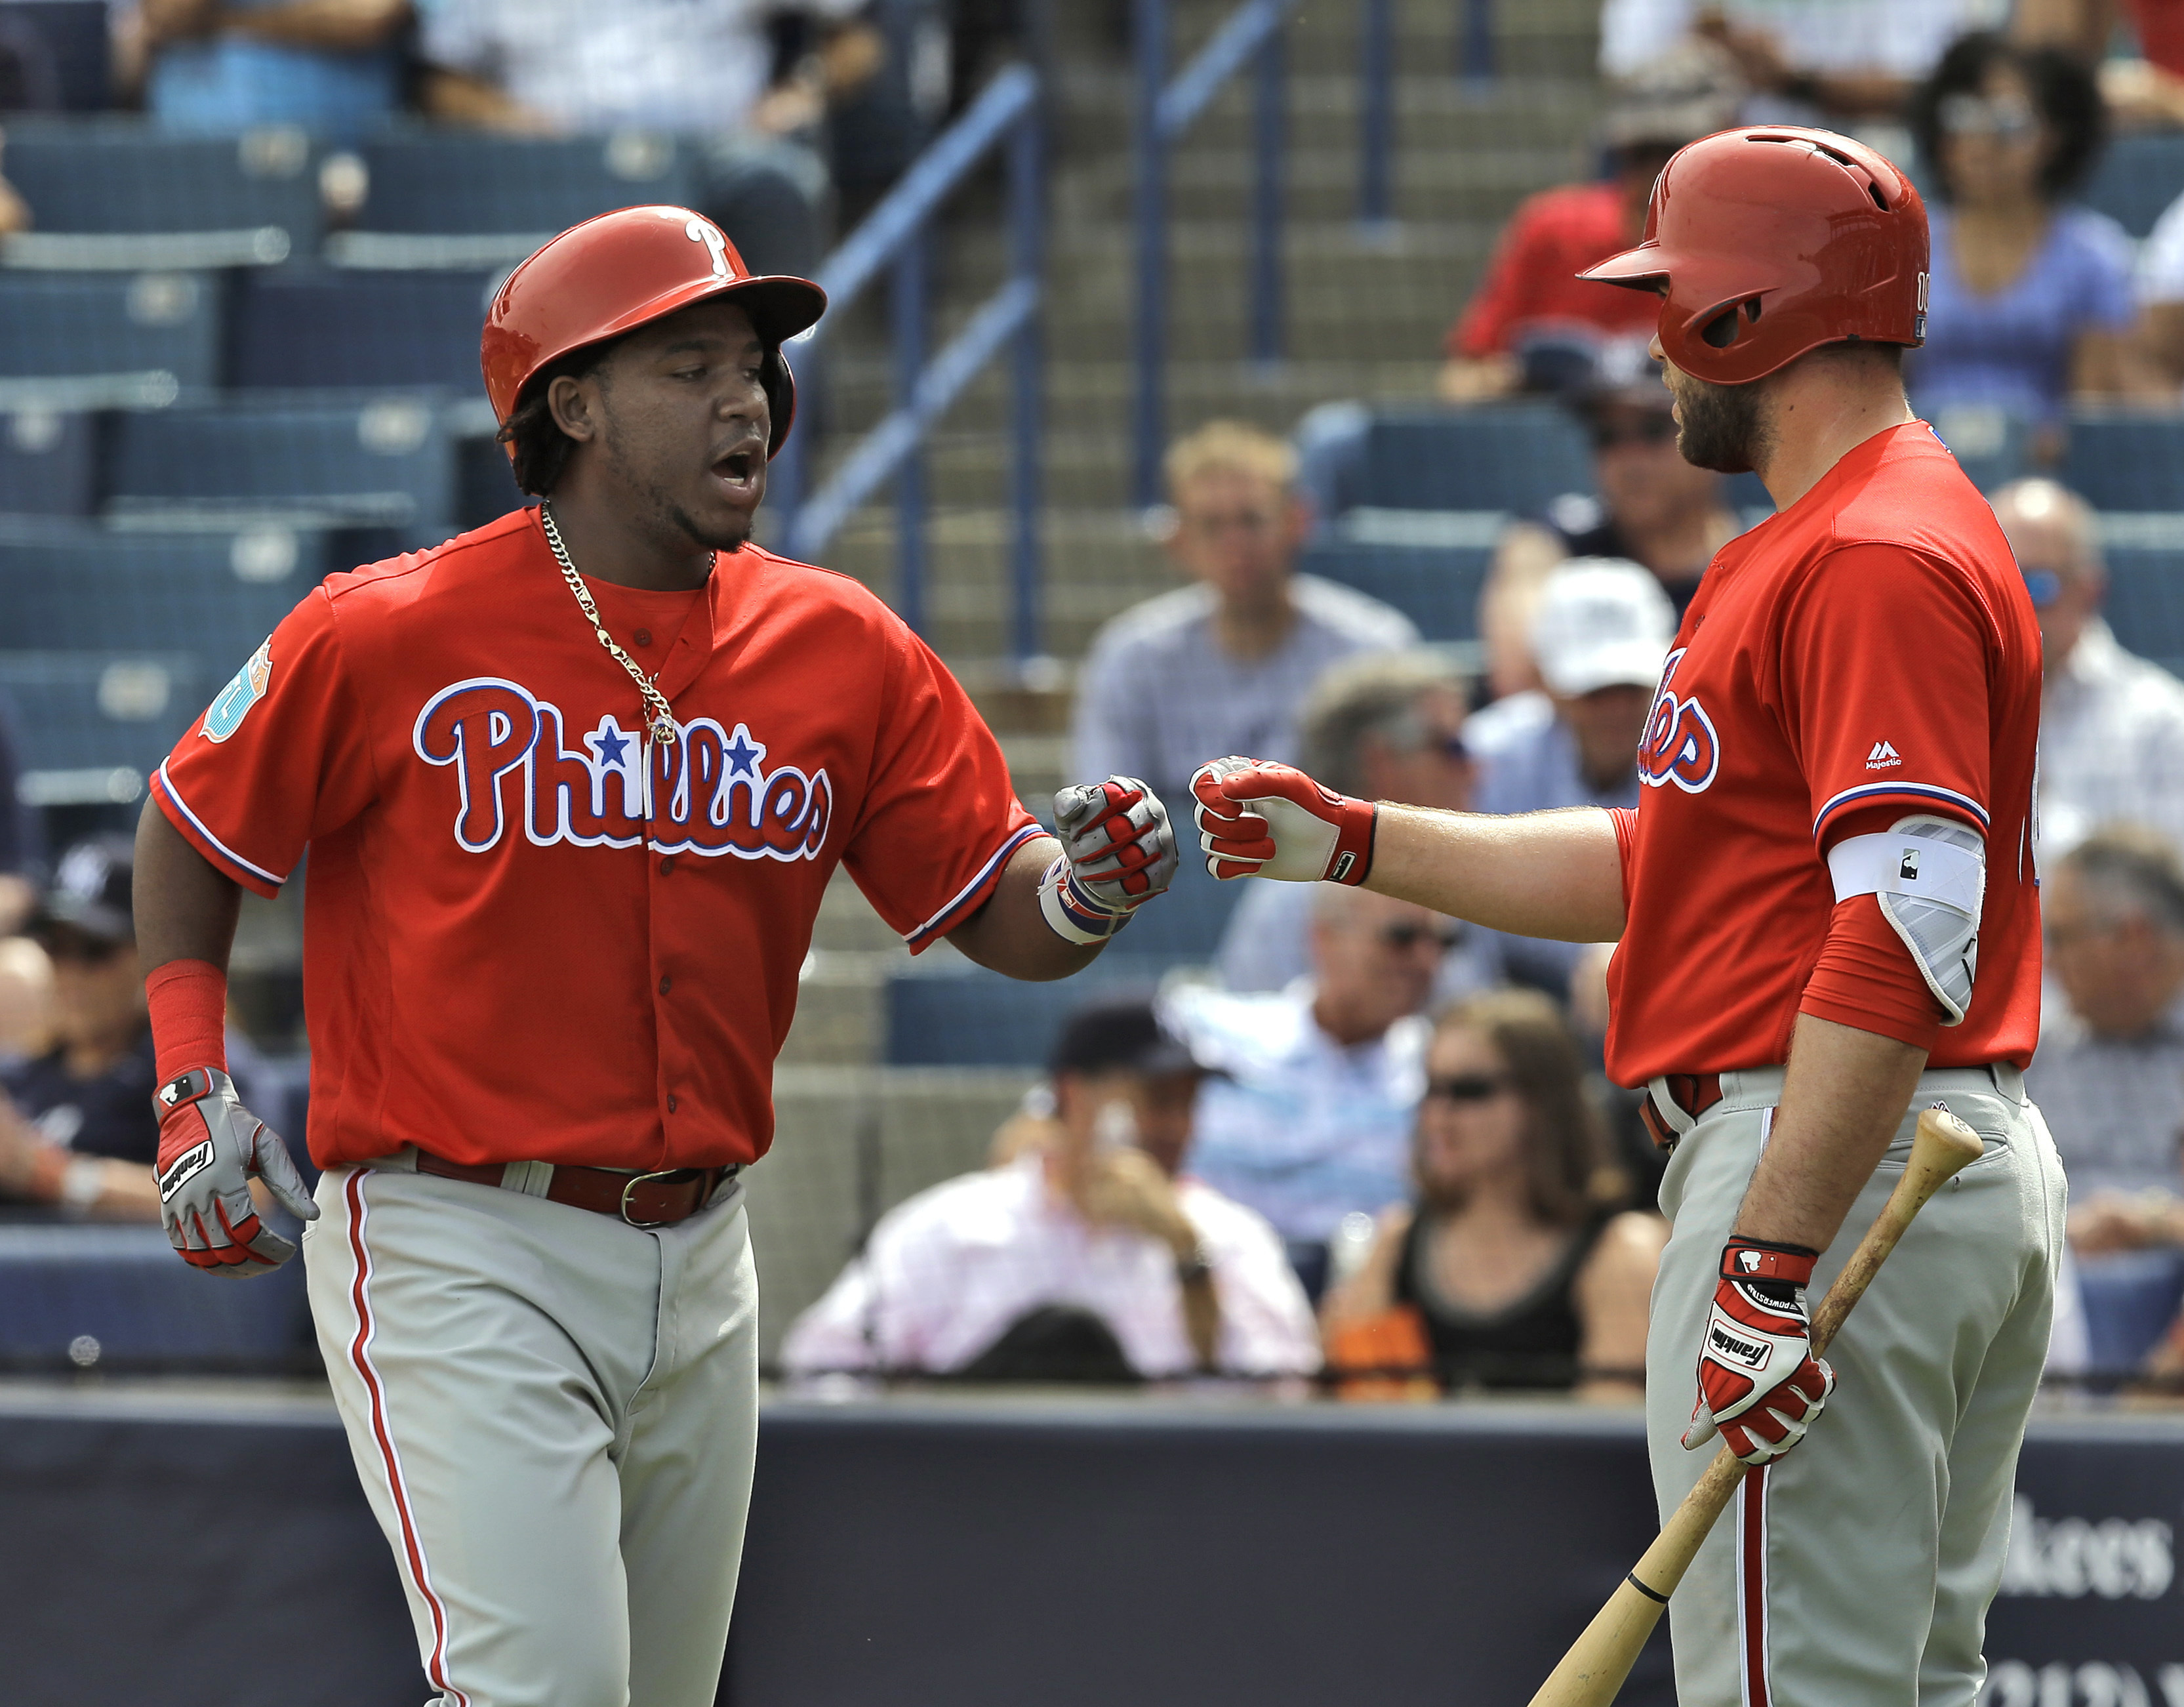 Philadelphia Phillies' Maikel Franco, left, high fives on-deck batter Darin Ruf after hitting a home run off New York Yankees relief pitcher Diego Moreno during the fourth inning of a spring training baseball game Thursday, March 3, 2016, in Tampa, Fla. (